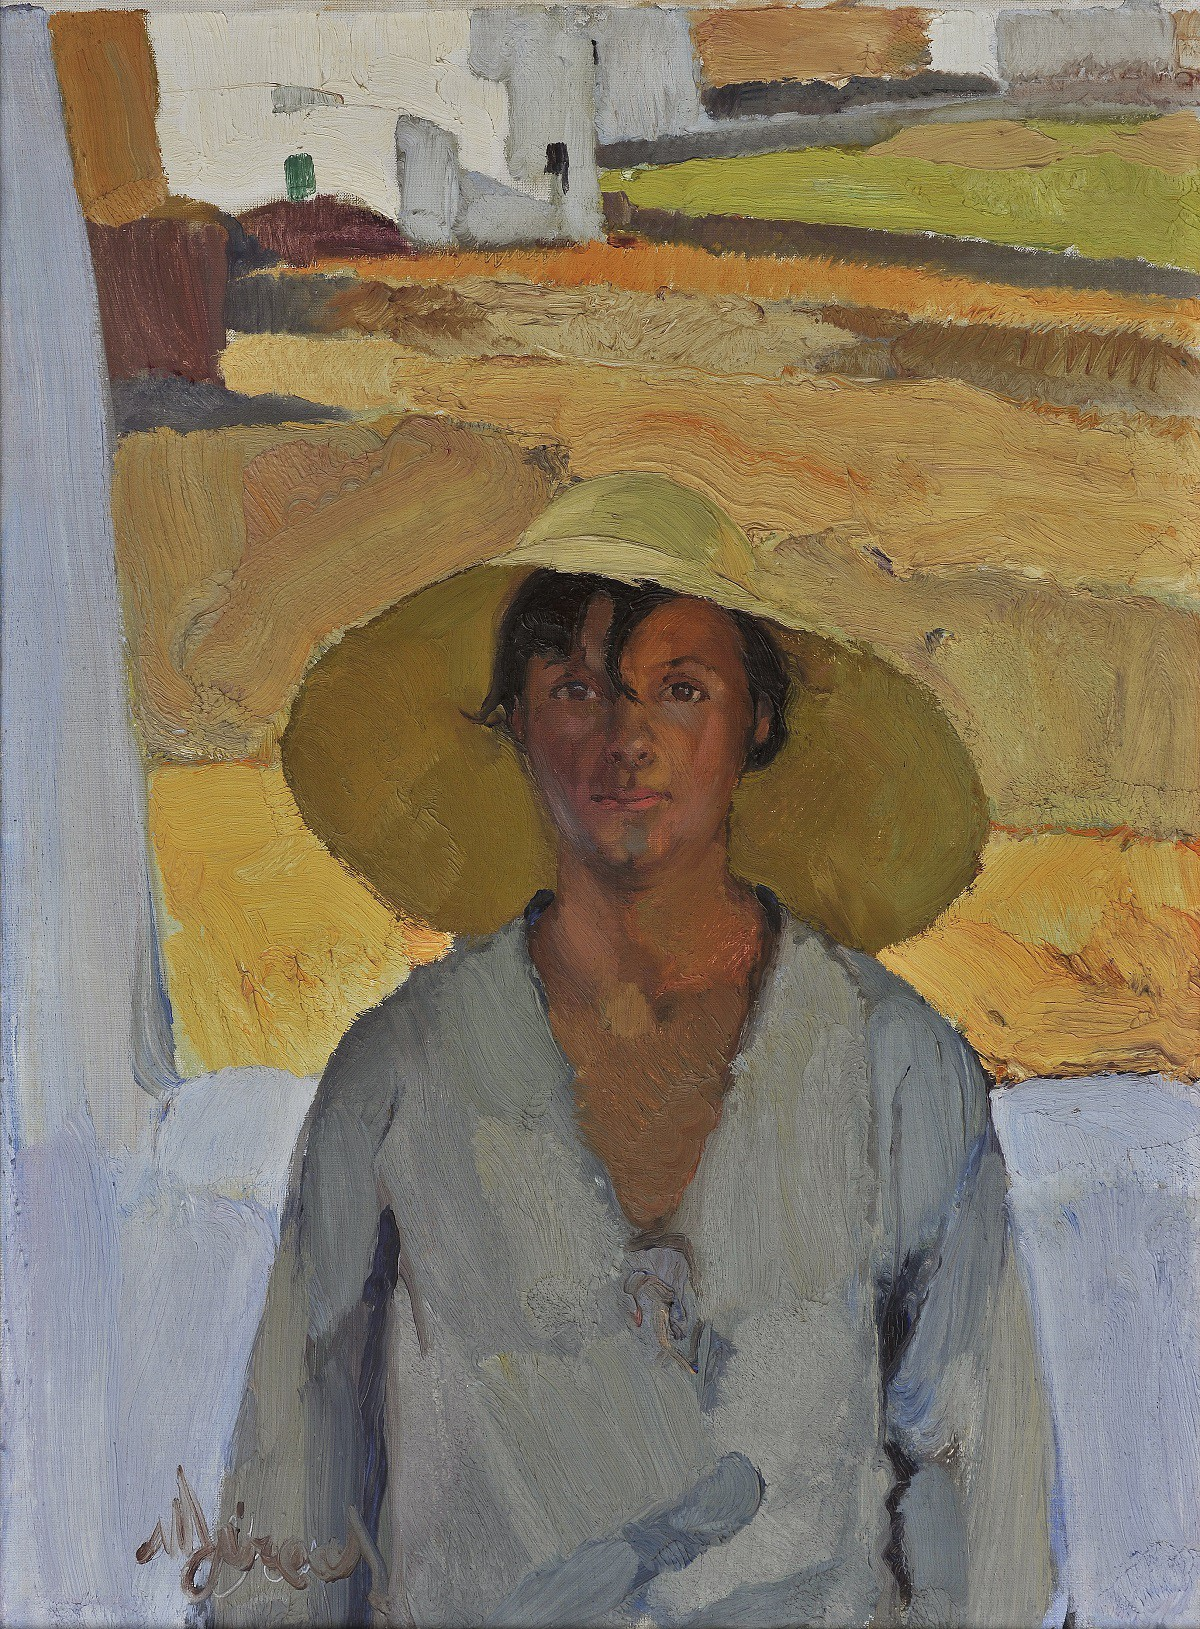 Painting of a woman wearing a sunhat